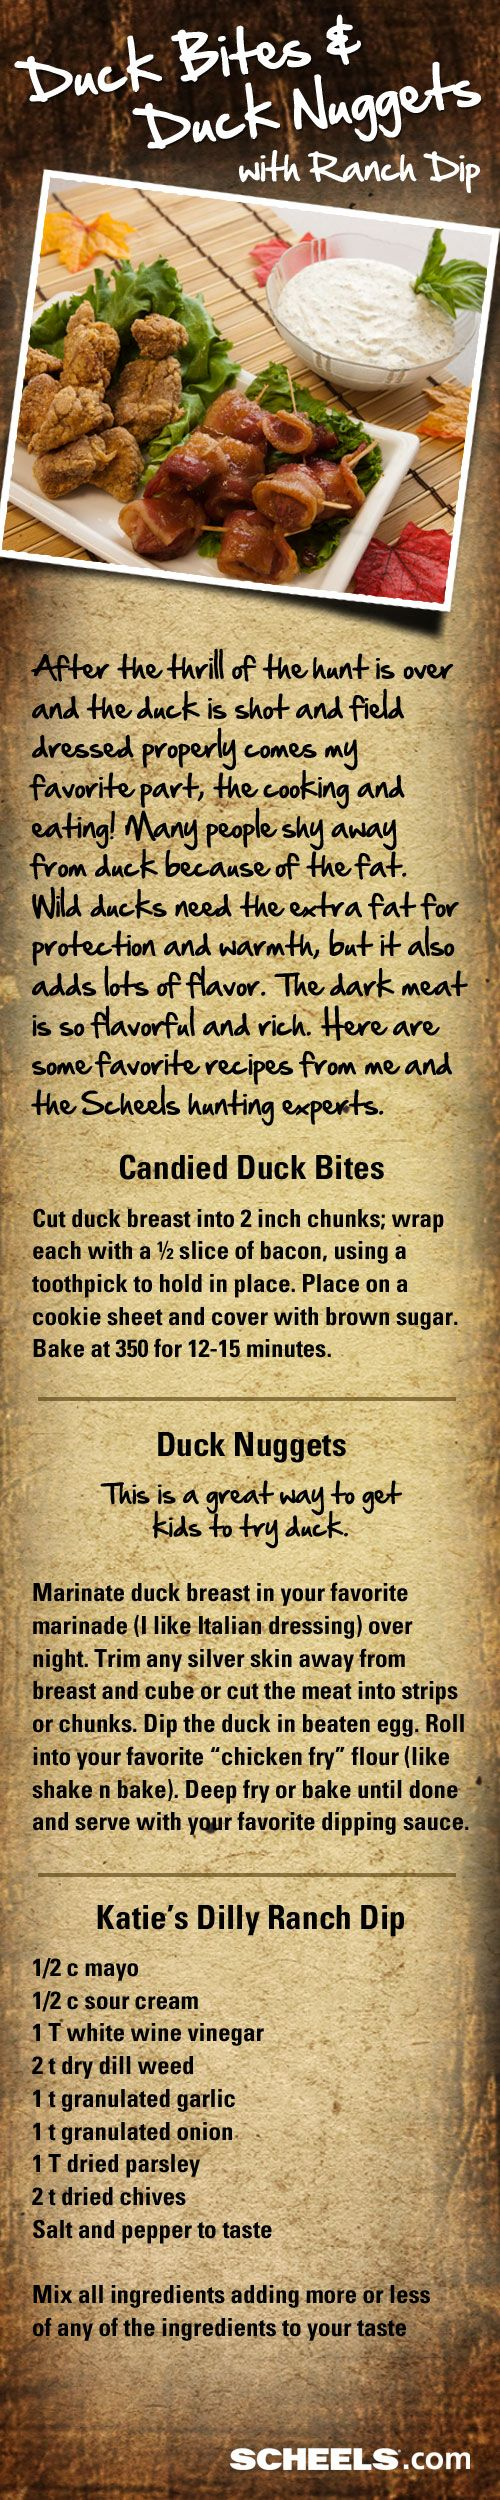 Here are some great tasting duck recipes that will have your family and friends craving more! // Recipe from #Scheels Gramma Ginna's Deli. #waterfowl #recipes